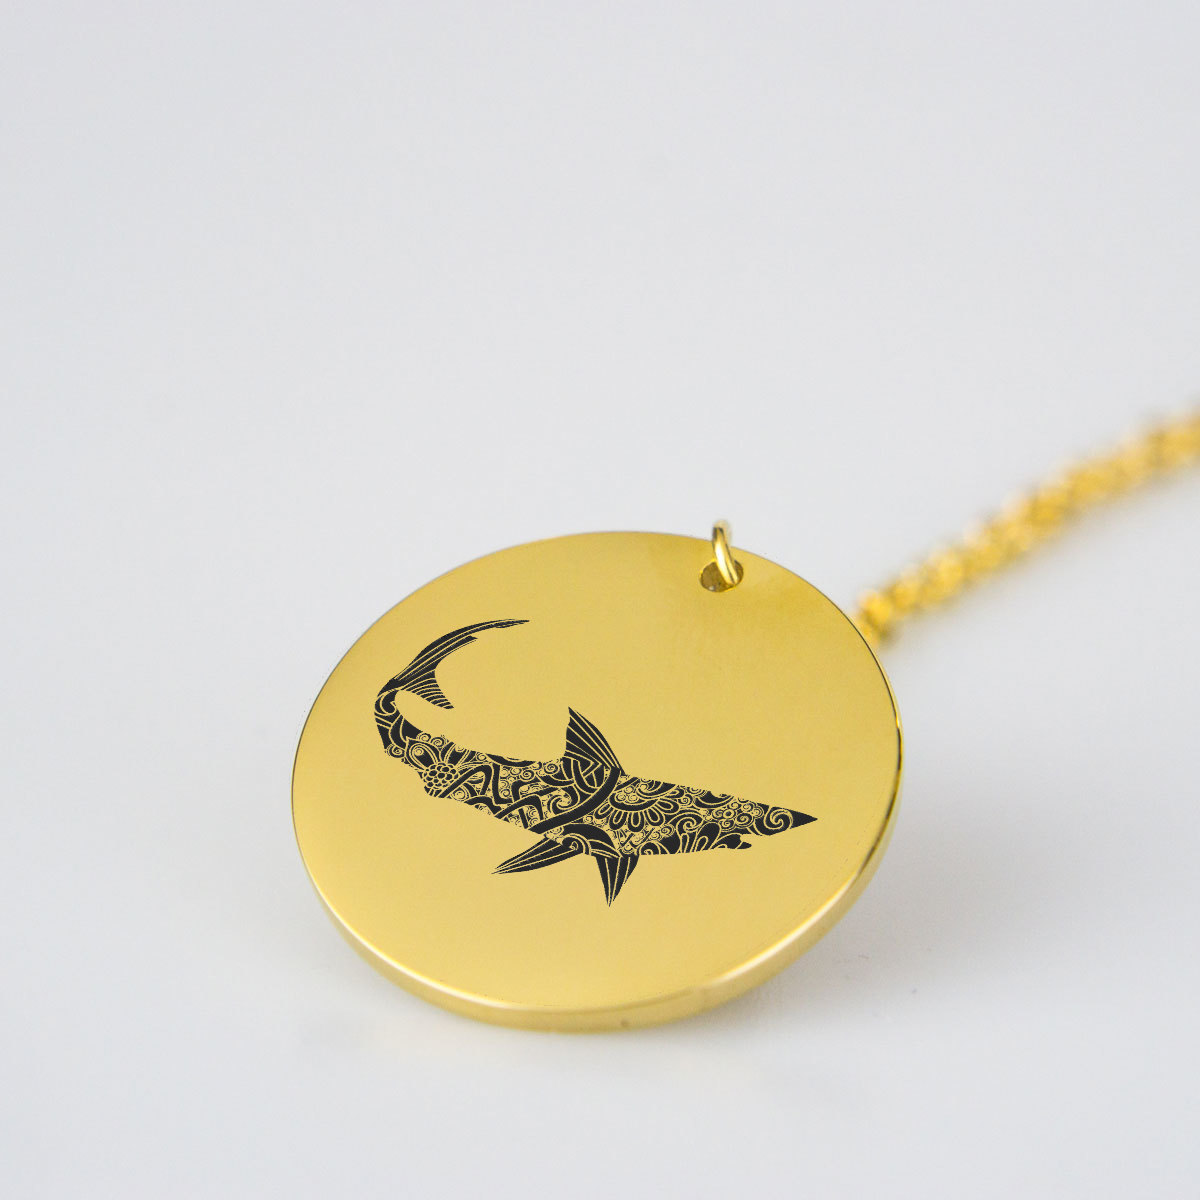 Shark Silhouette Charm Necklace